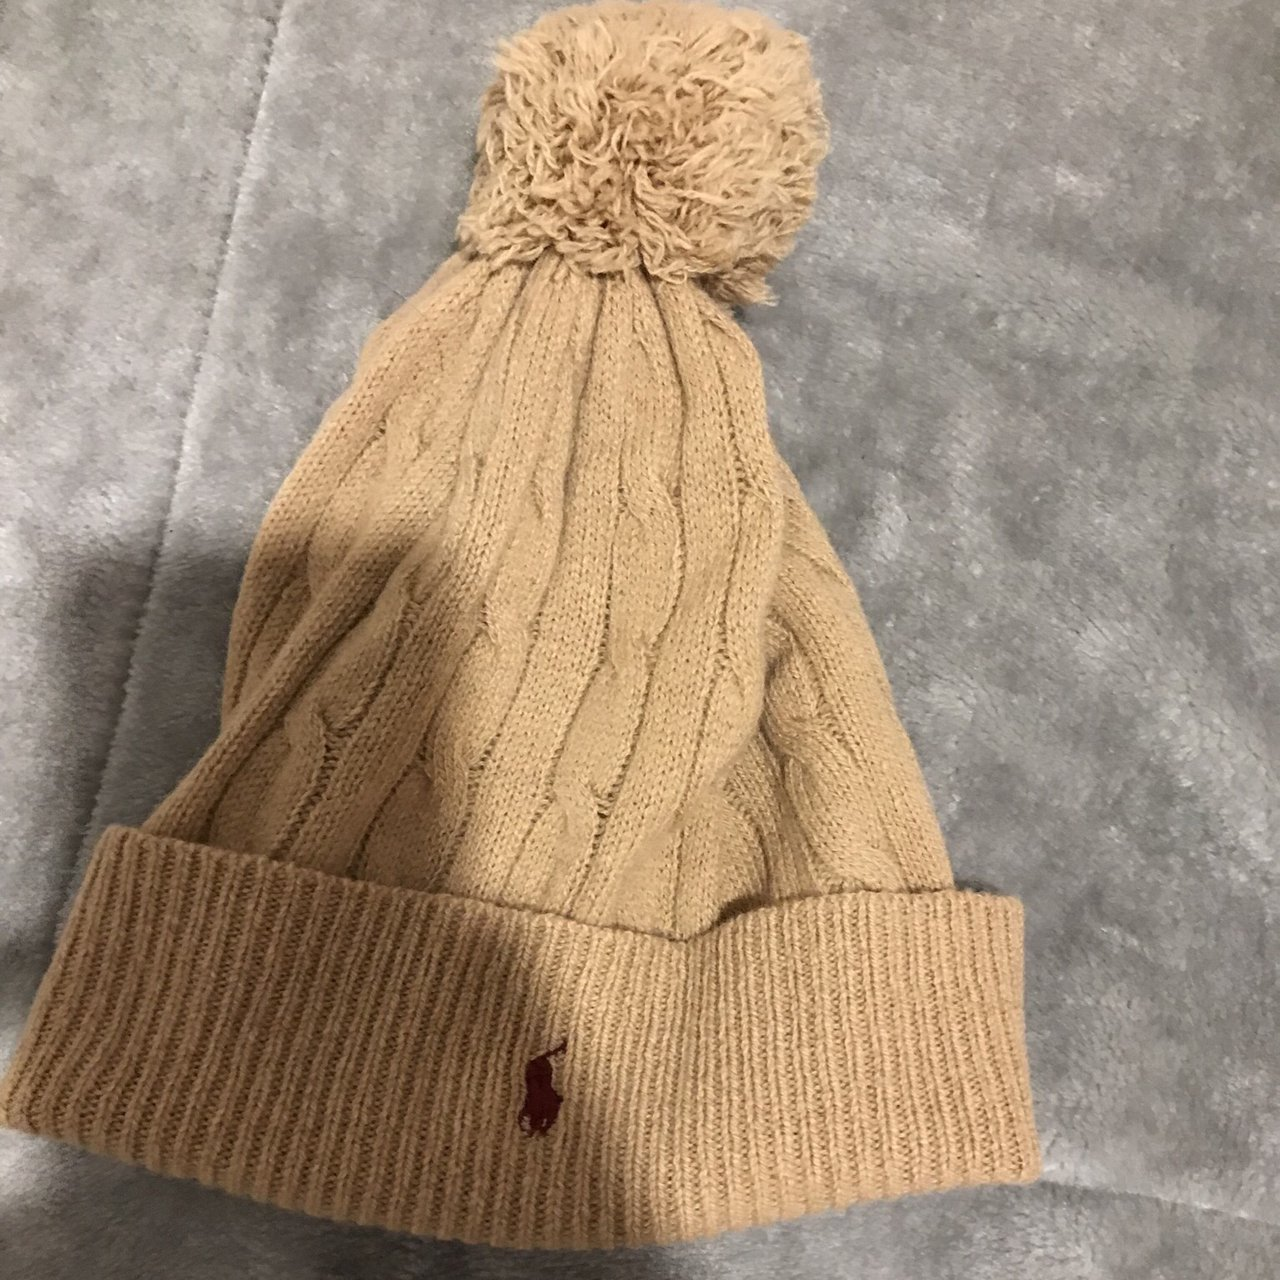 Womens ralph lauren Beanie I payed £50 and have not had it - Depop aff888cfc